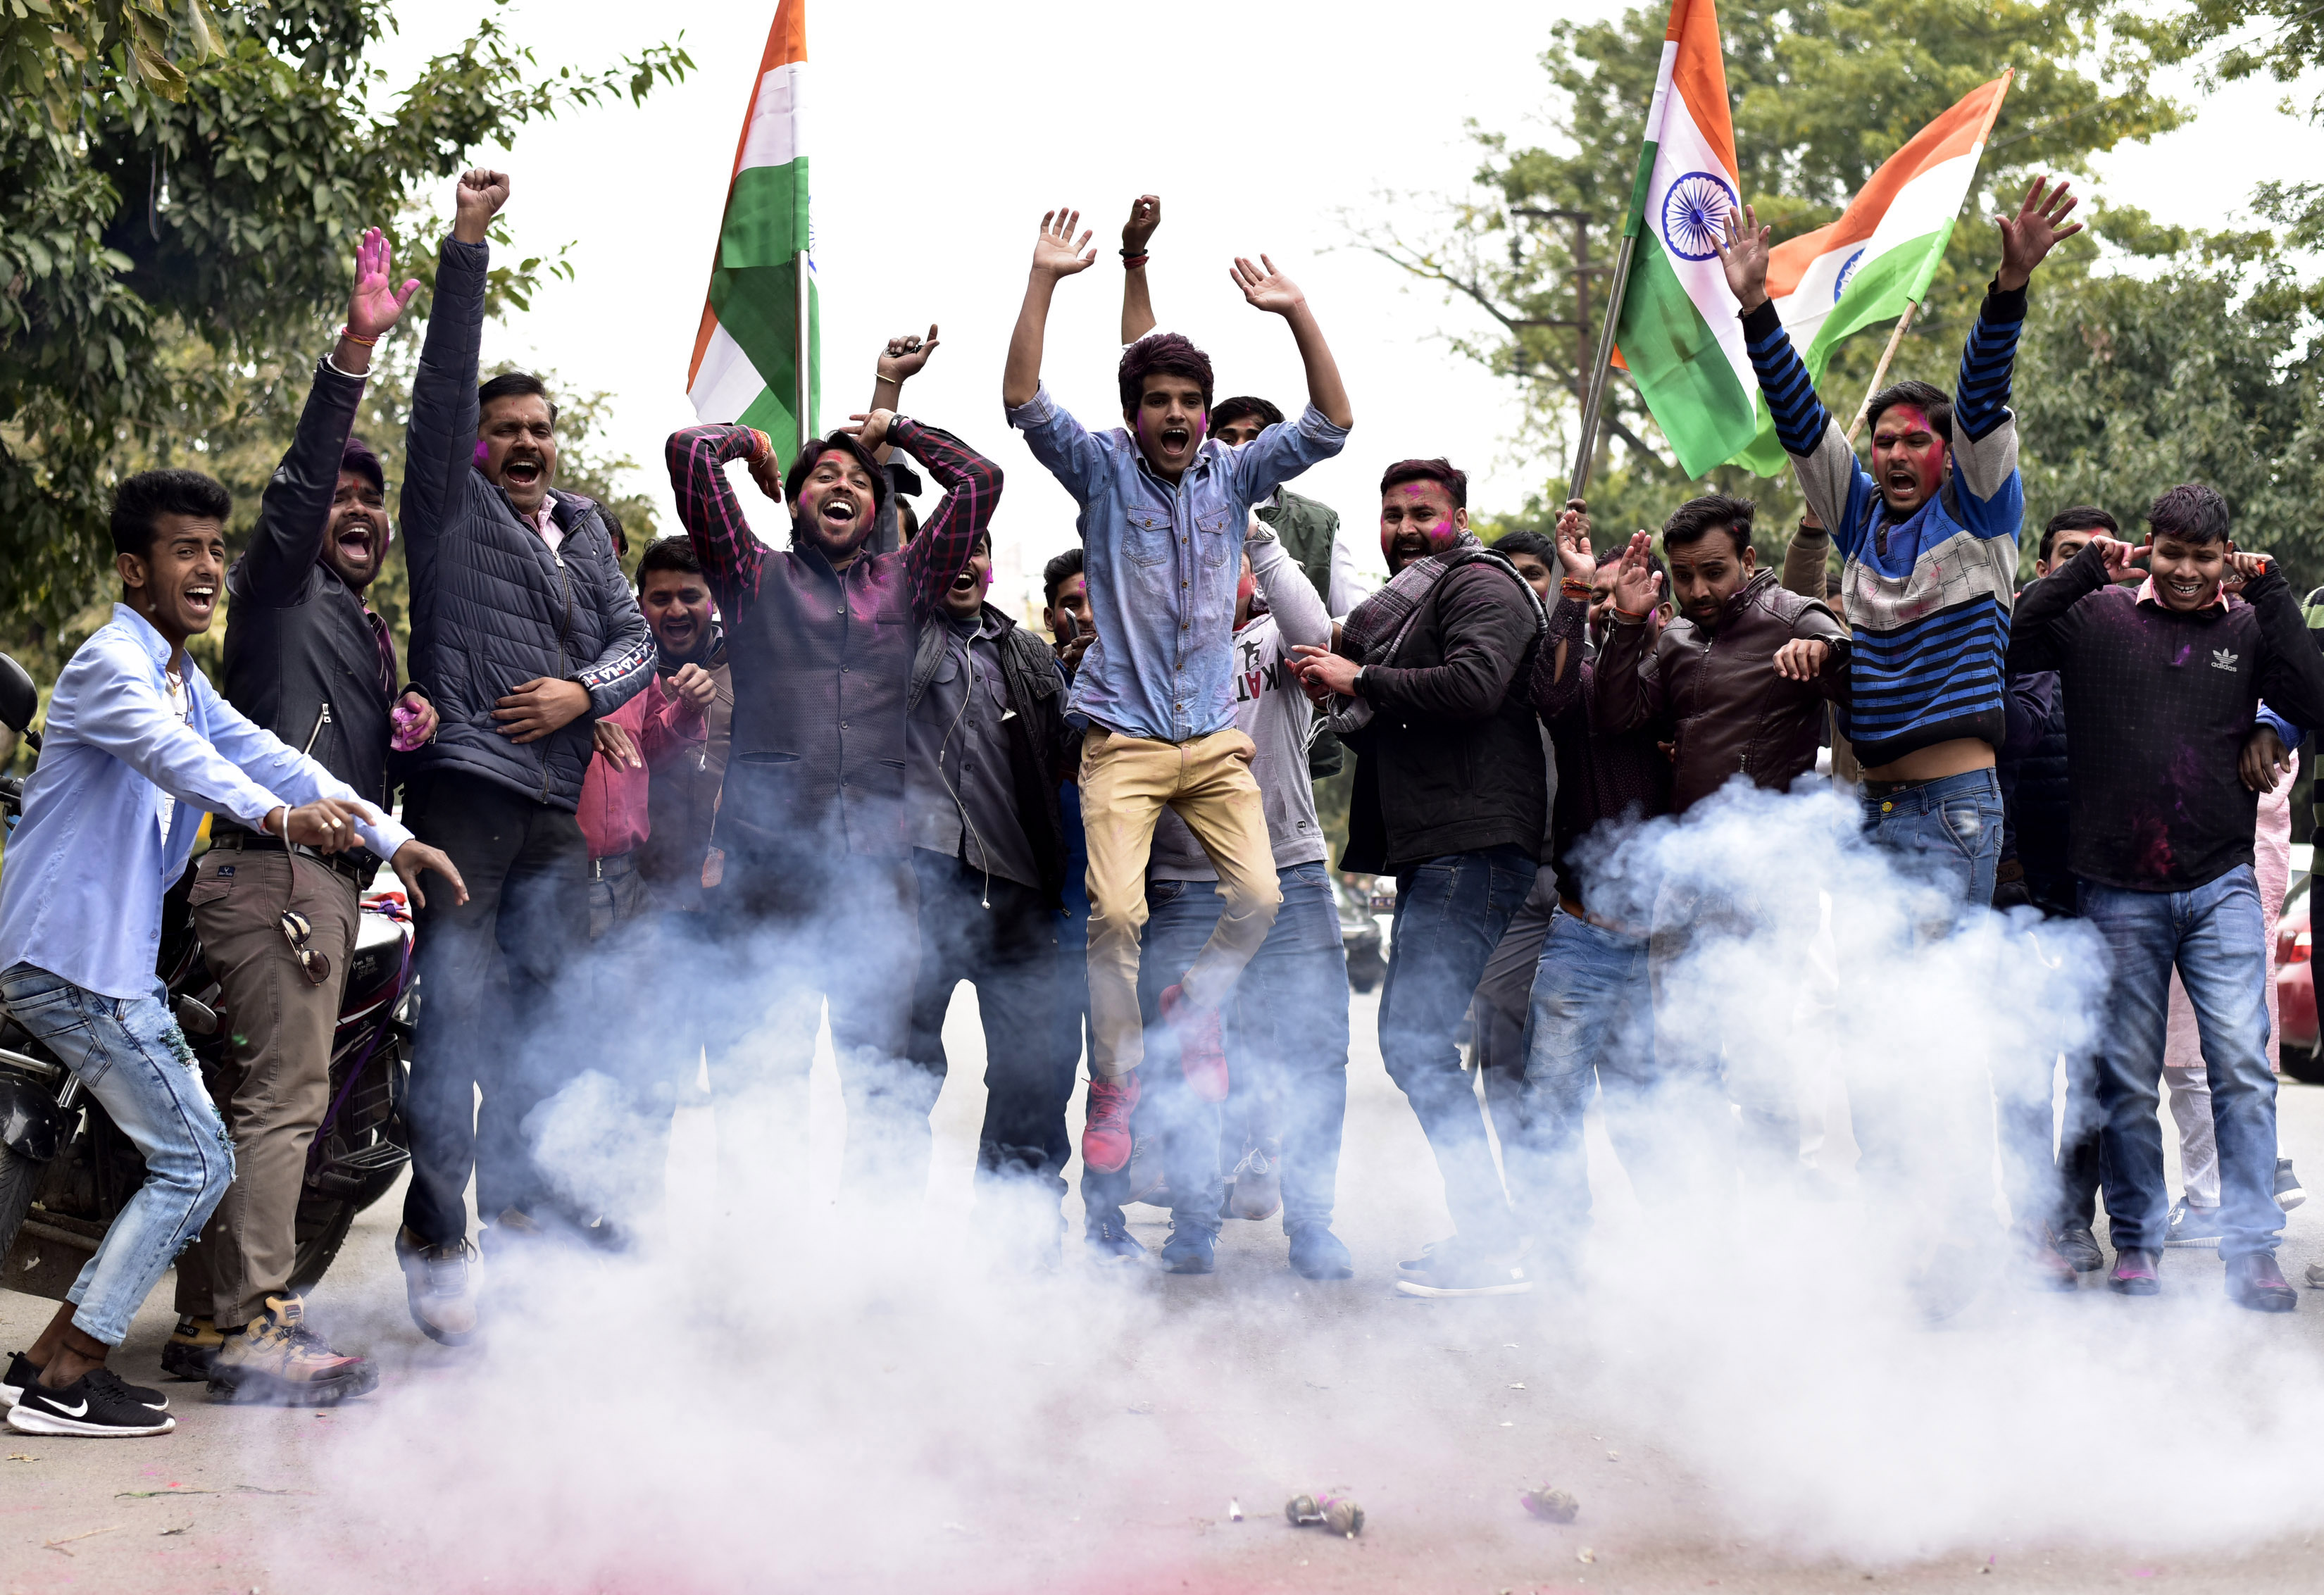 Members of an Indian political party in Noida, India, celebrating after the airstrike on Balakot on Tuesday, February 26, 2019.